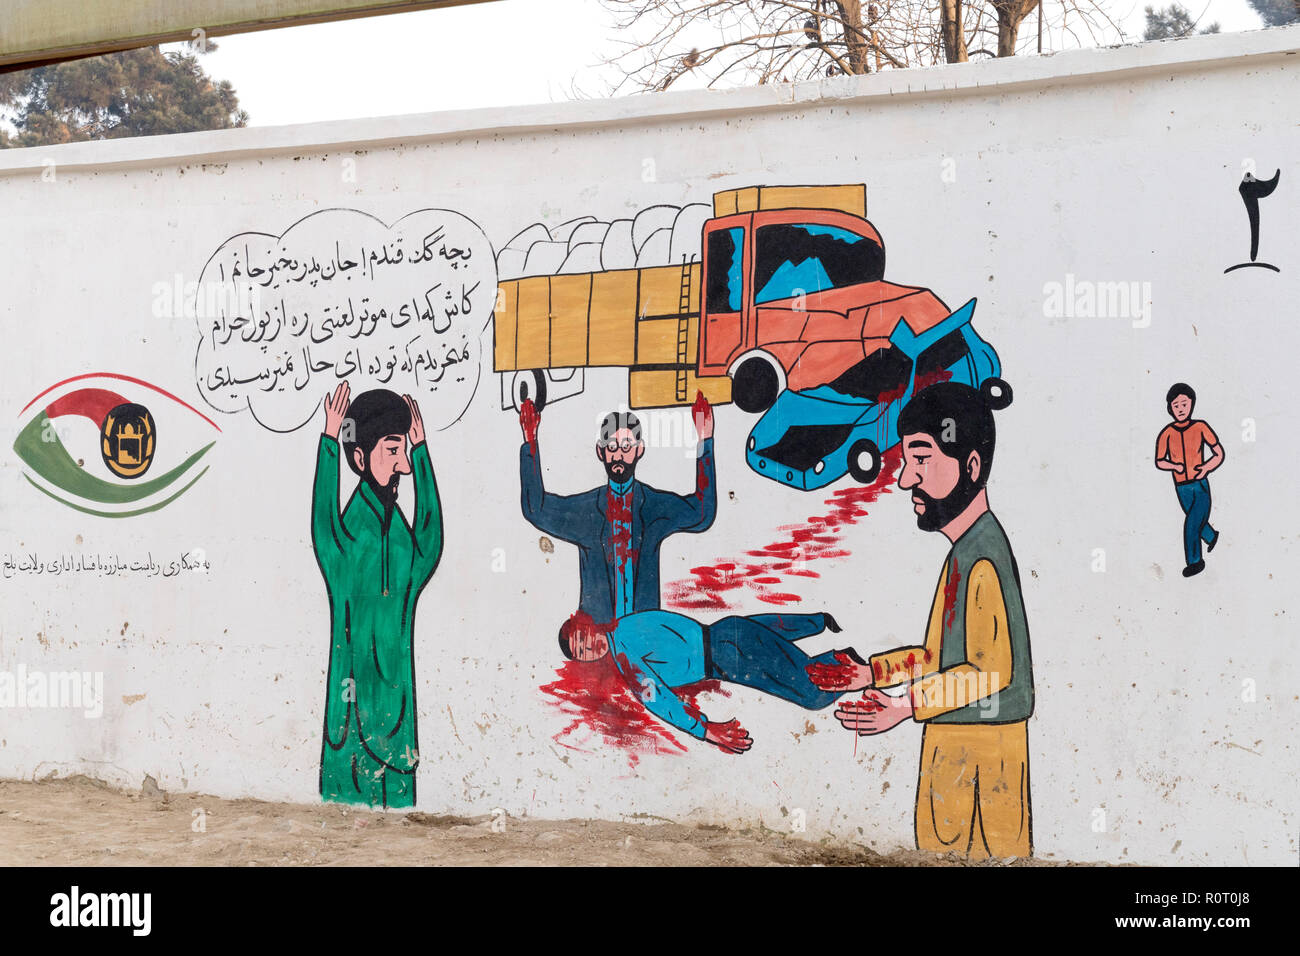 Sponsored Naive Educational Mural About Driving Safely To Avoid Fatal Accidents On The Street Side, Mazar-e Sharif, Afghanistan - Stock Image